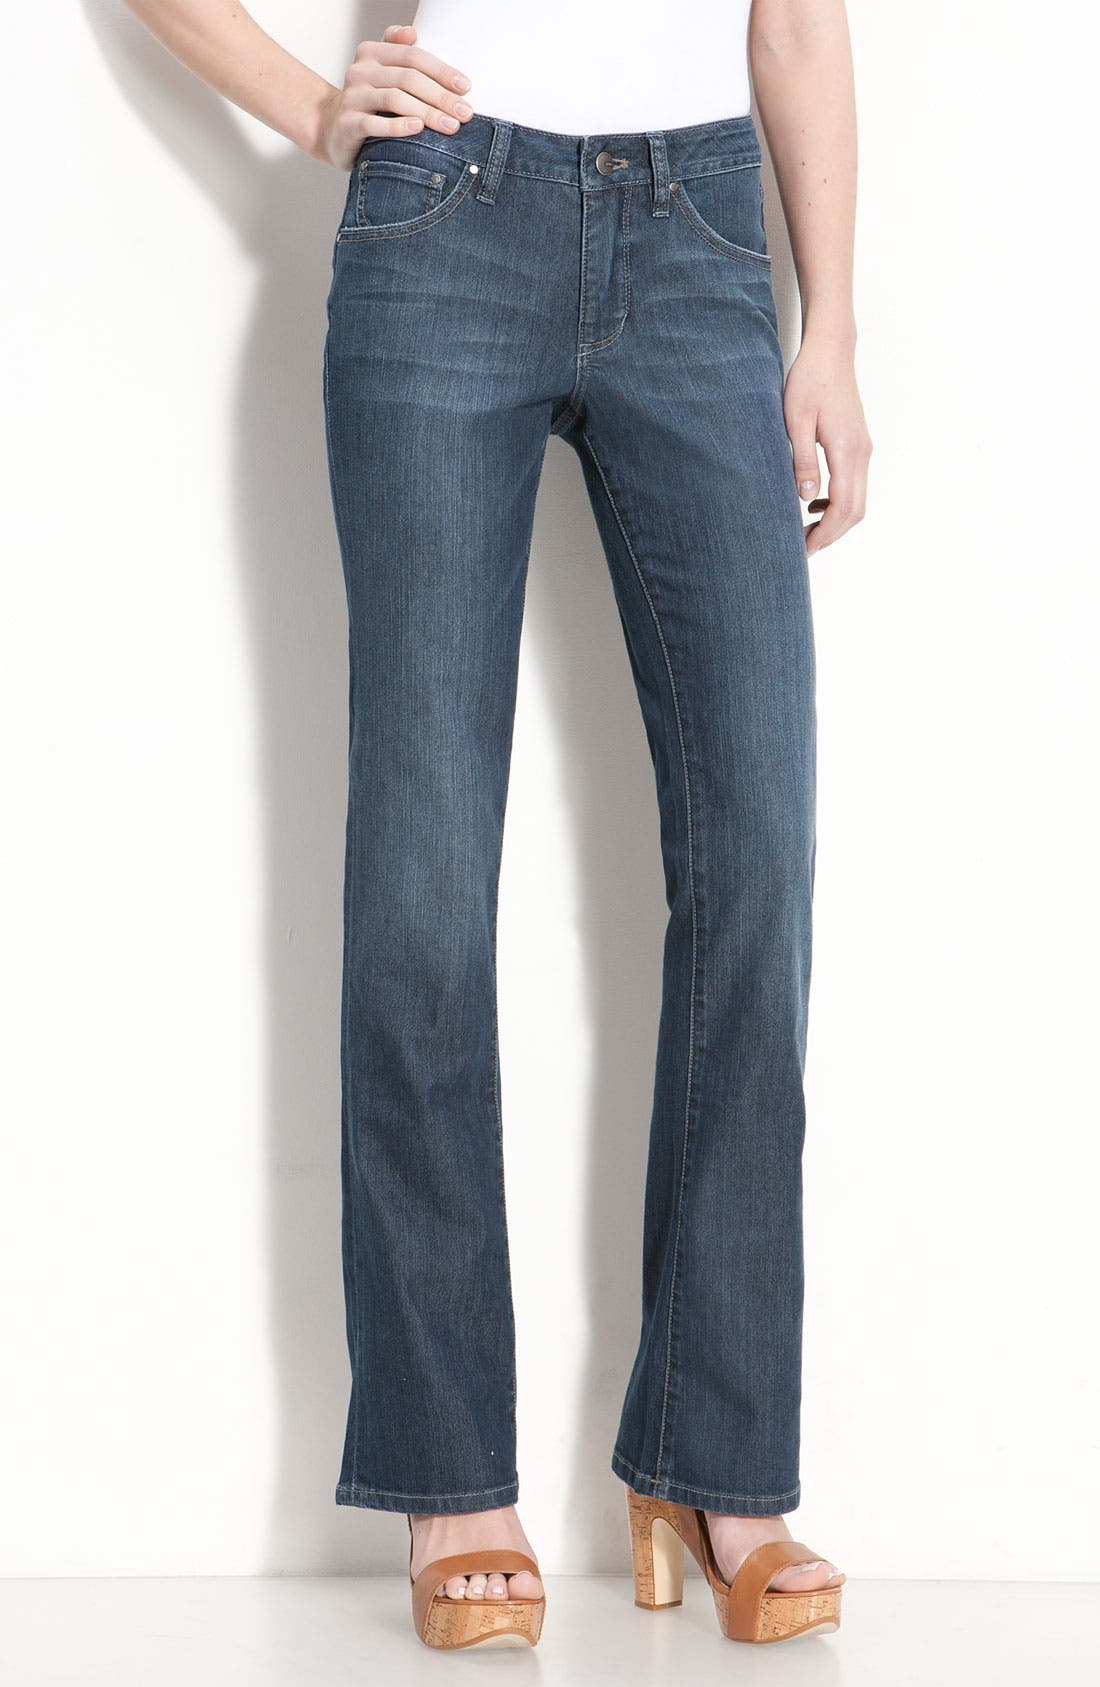 Alternate Image 1 Selected - Jag Jeans 'Trudie' Slim Flare Leg Jeans (Petite) (Online Exclusive)